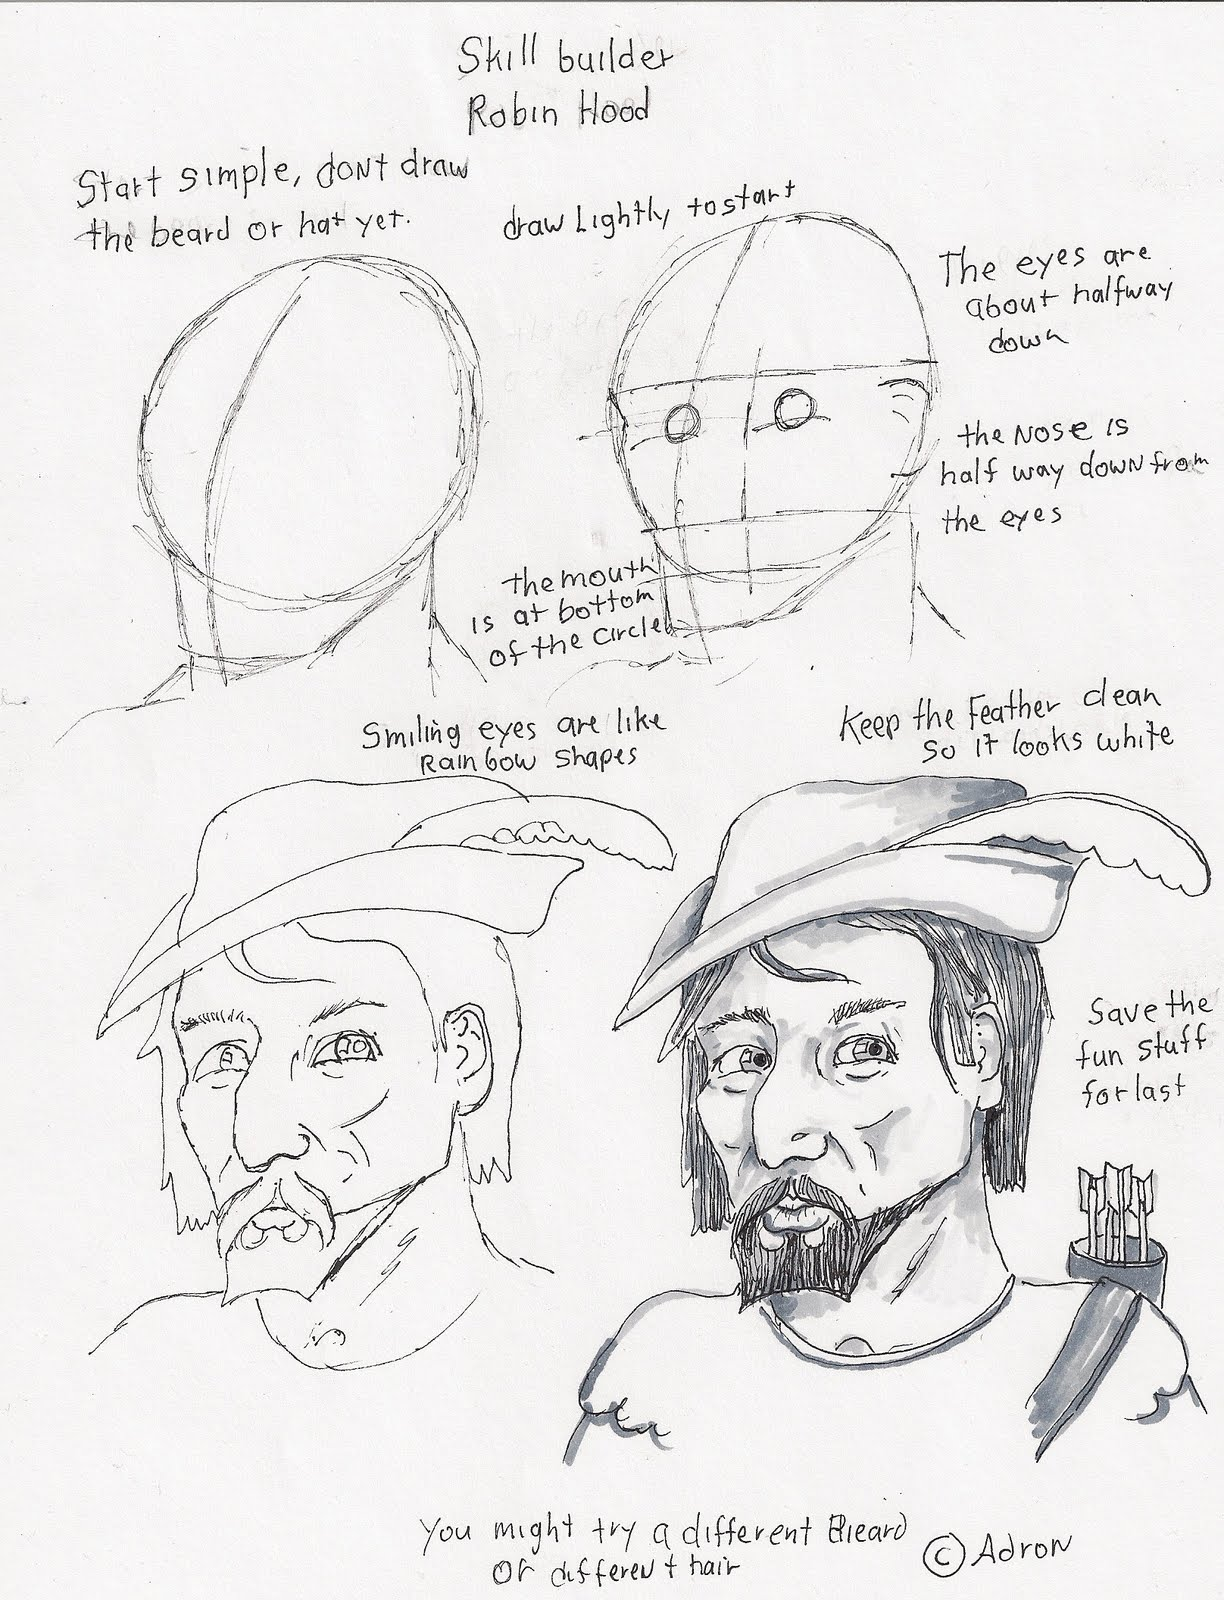 Adron S Art Lesson Plans How To Draw A Portrait Of Robin